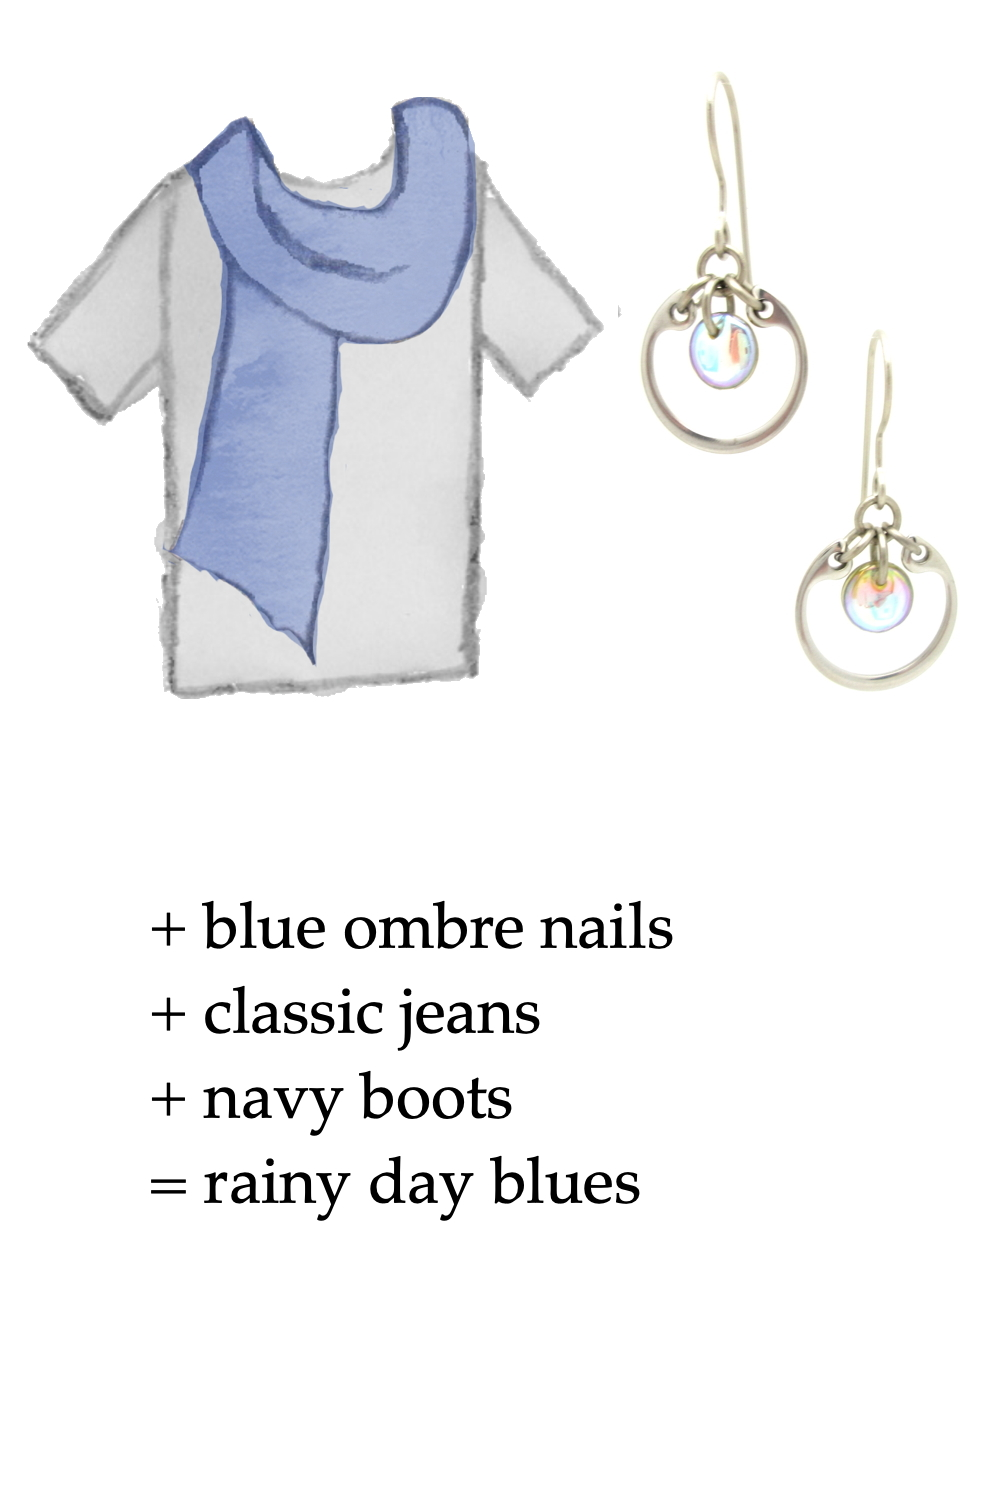 style sketch of a gray tee + blue scarf + pale rainbow modern circle earrings + blue ombre nails+ classic jeans + navy boots = rainy day blues